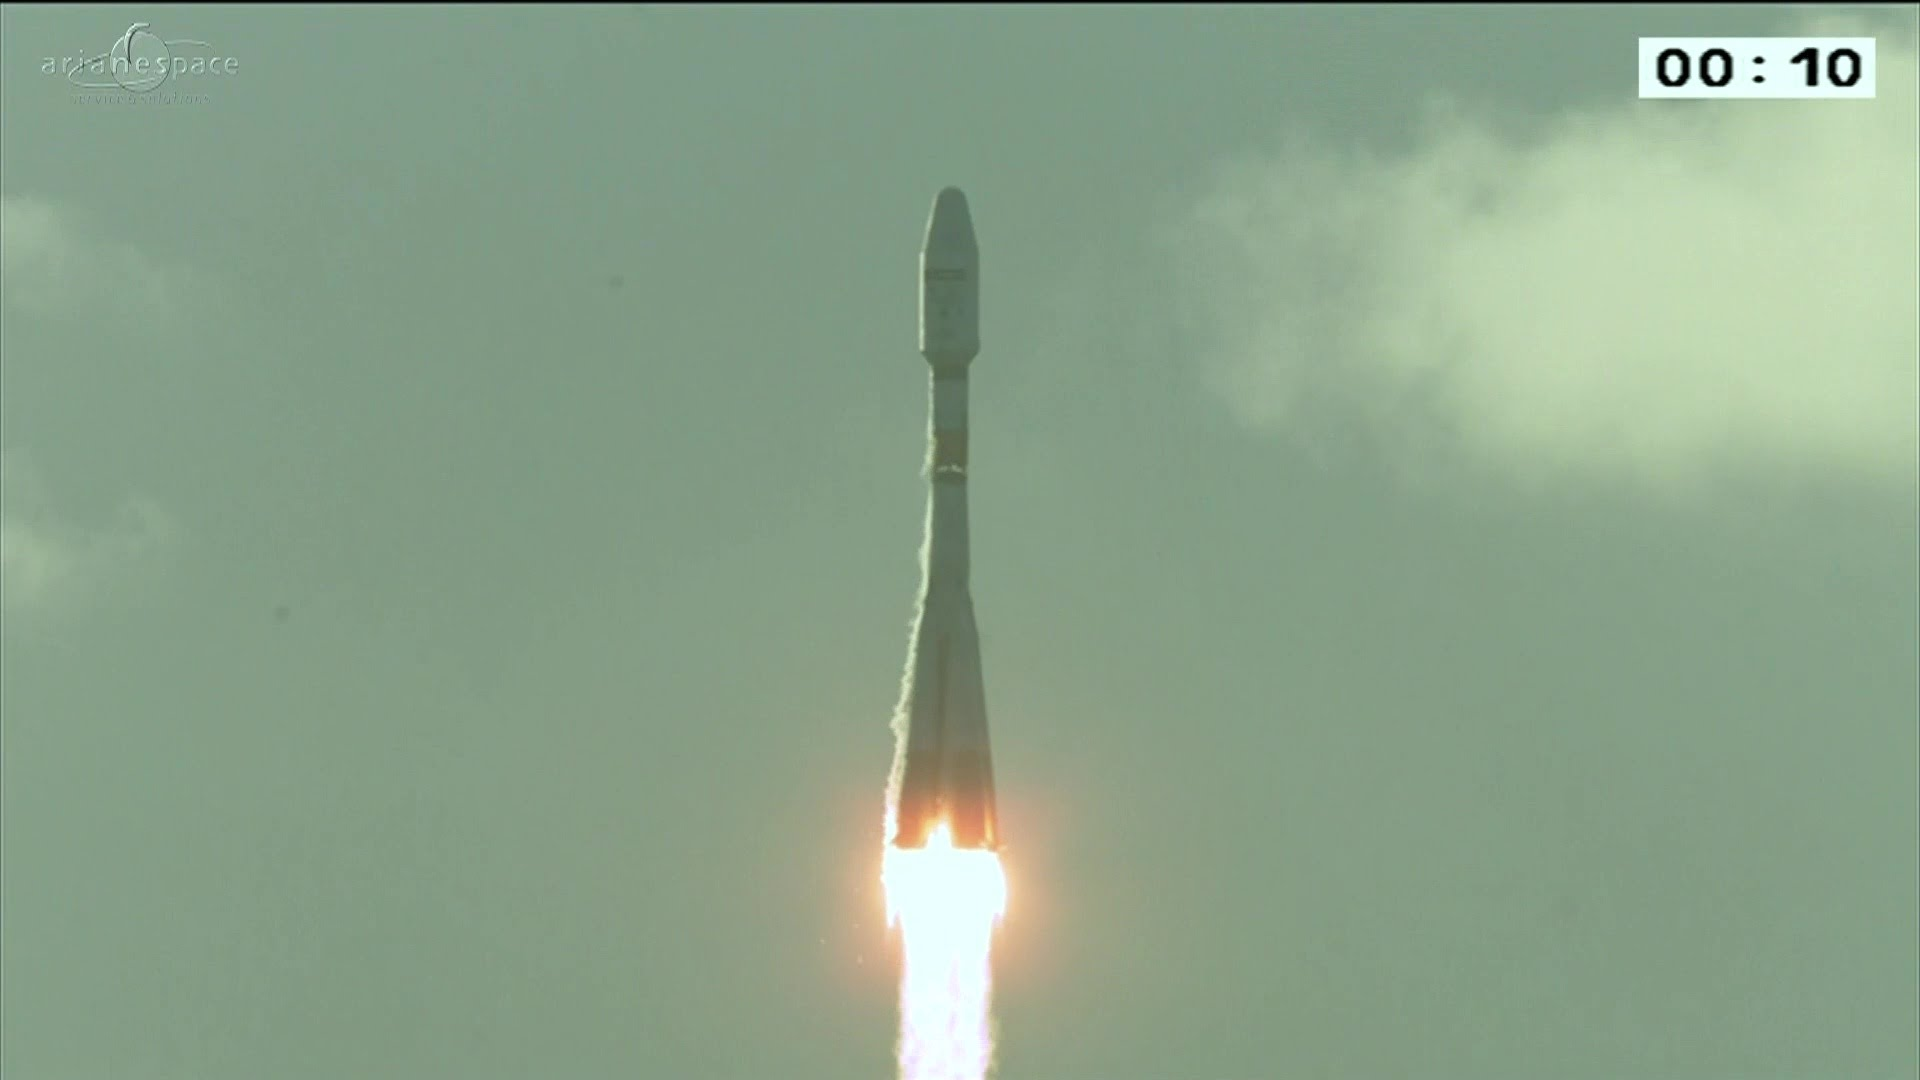 After being delayed for three days continuously, the Sentinel-1B satellite was launched on Soyuz flight VS14 from Europe?s Spaceport in Kourou, French Guiana, on Monday at 23:02 CEST (21:02 GMT). The launch was originally planned for 22 April but weather conditions and a technical issue delayed liftoff.